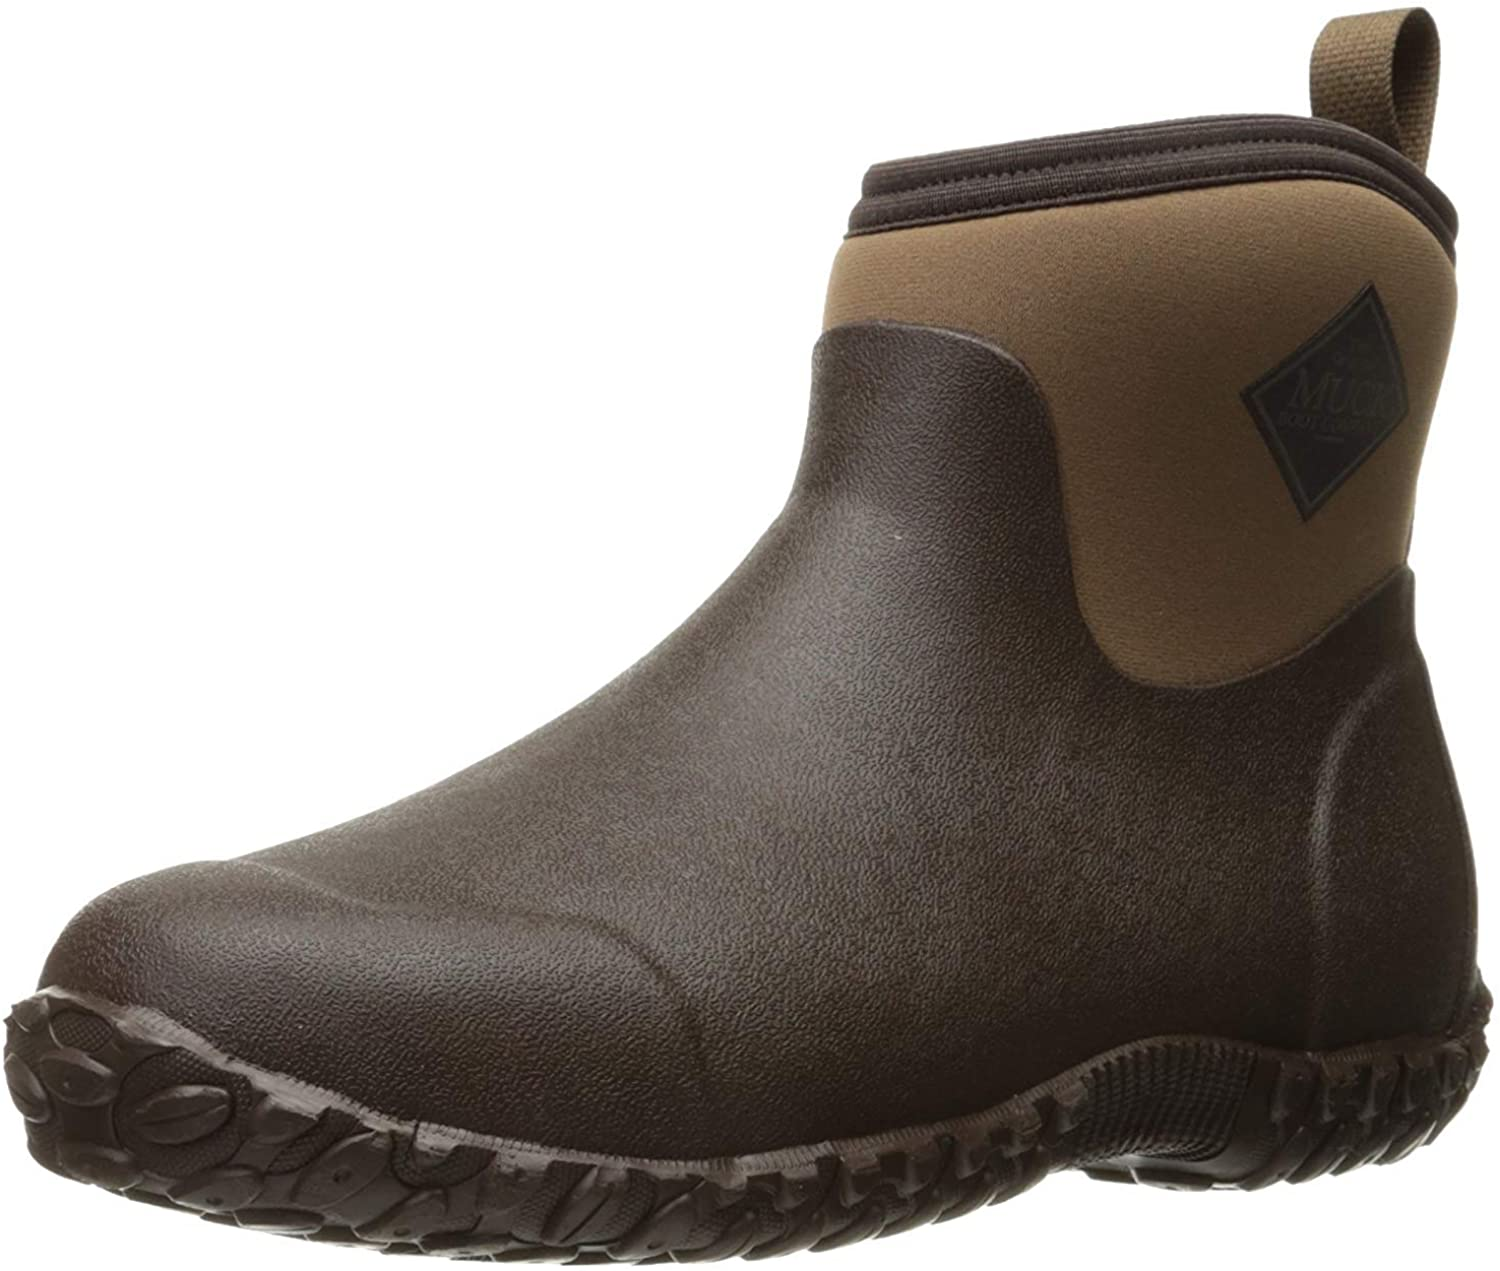 | Muckster ll Ankle-Height Men's Rubber Garden Boots | Ankle & Bootie